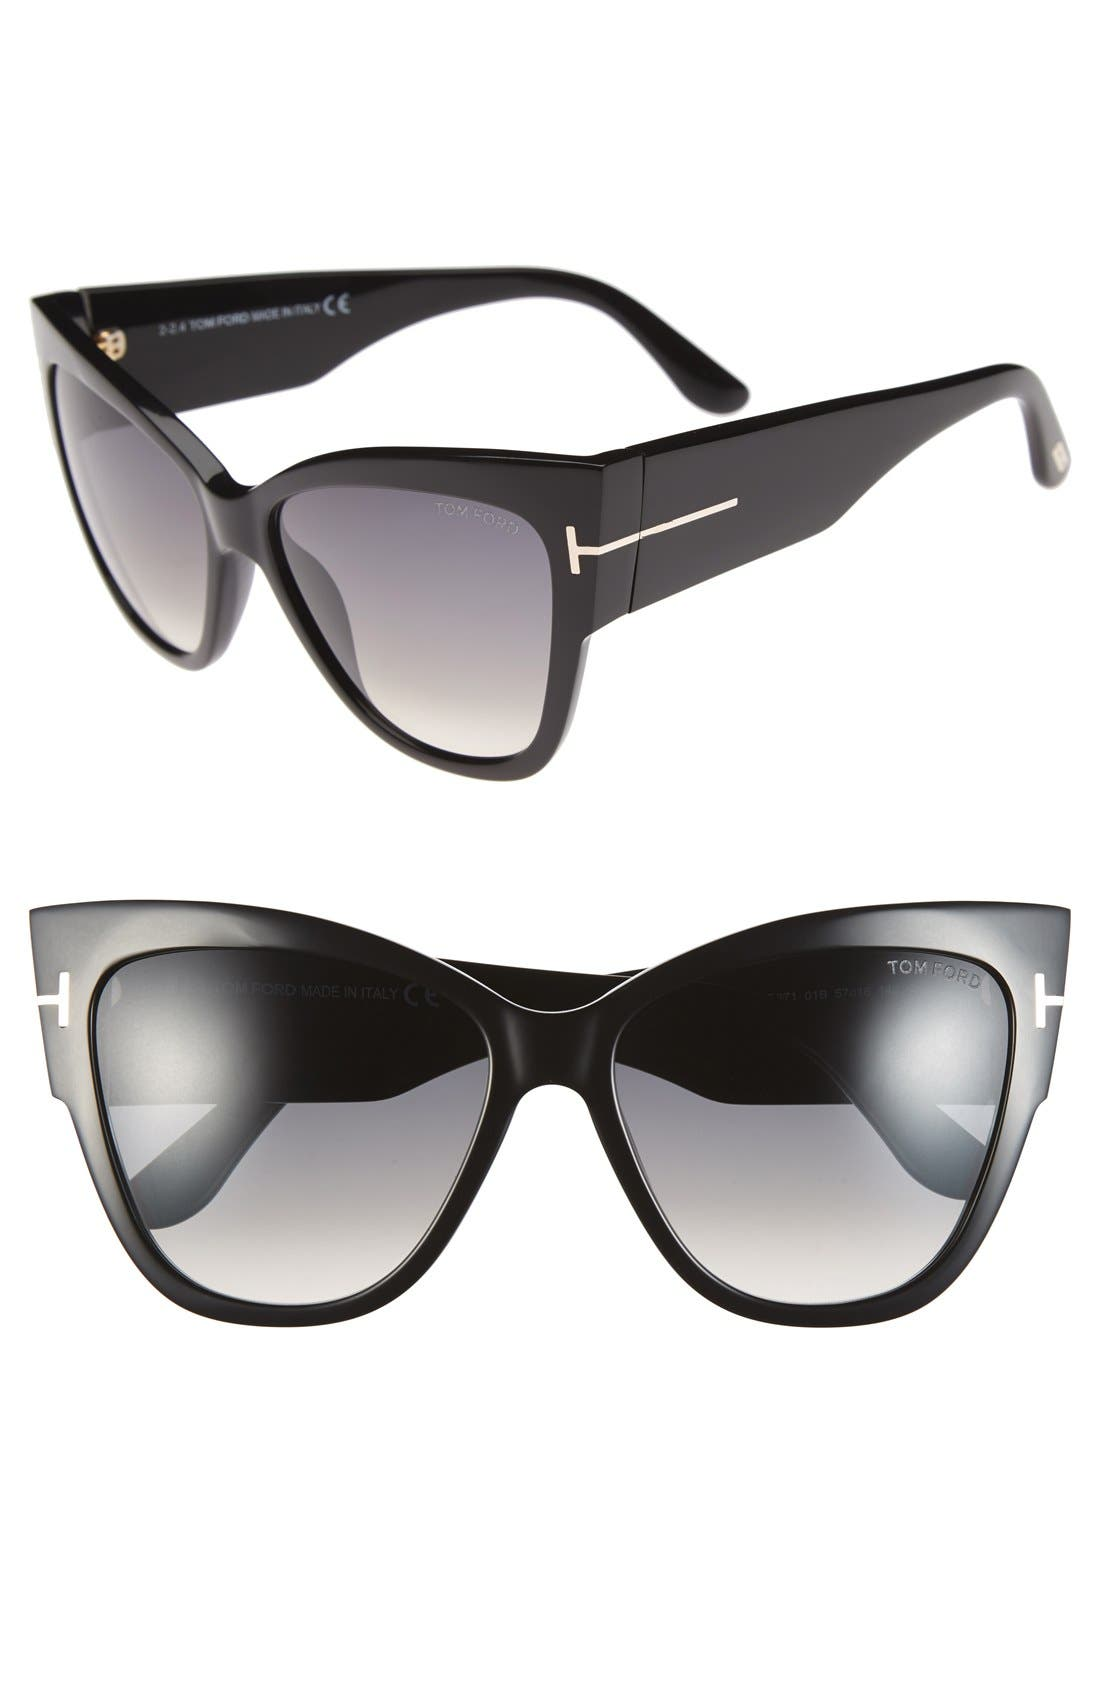 Storm Black Sunglasses with Stud Pattern Side upVm1vh7